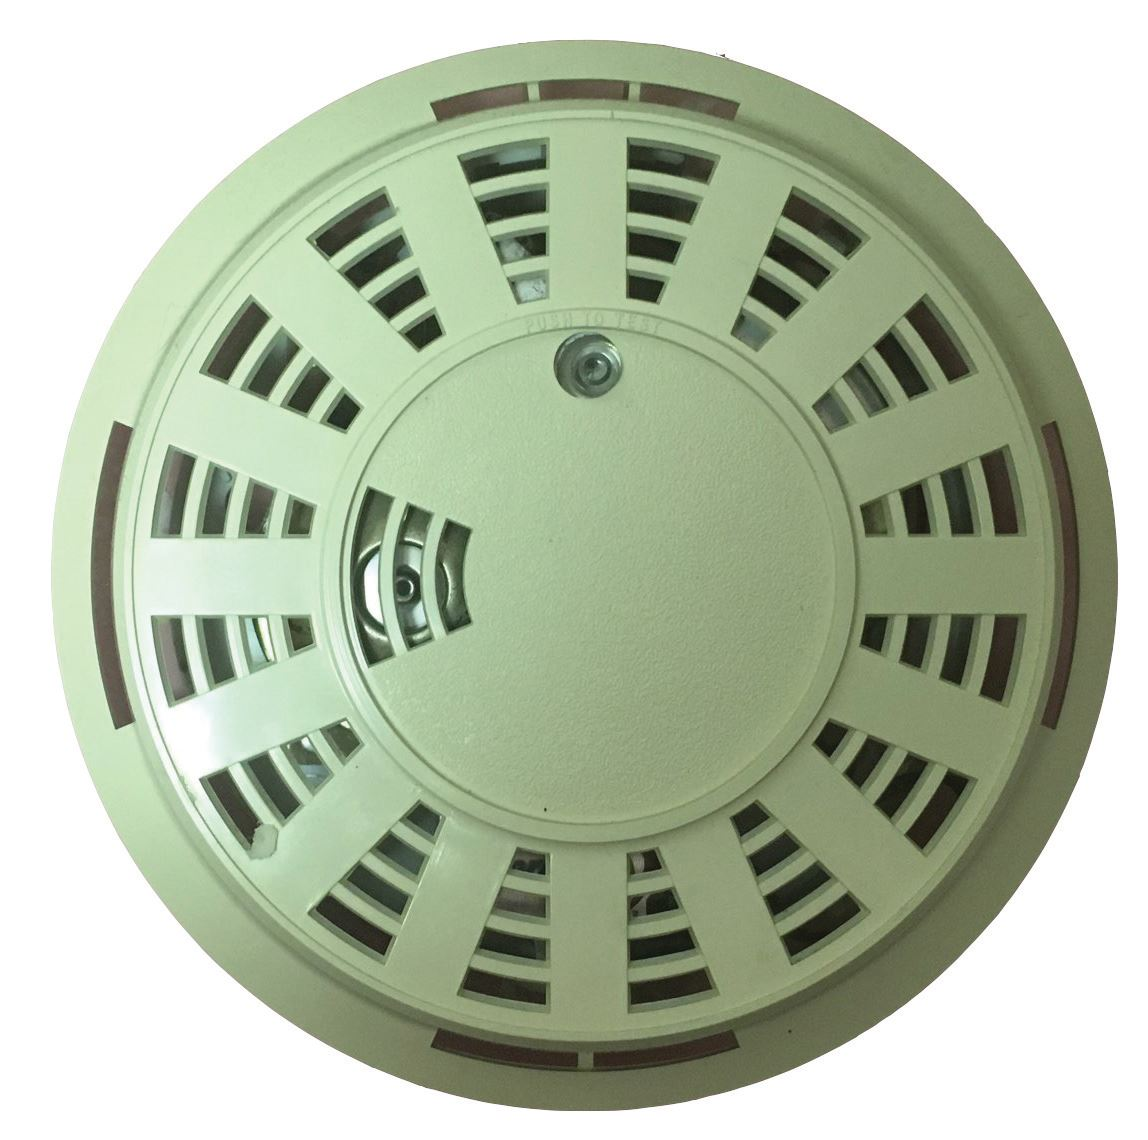 Smoke detectors like this should be replaced every 10 years.